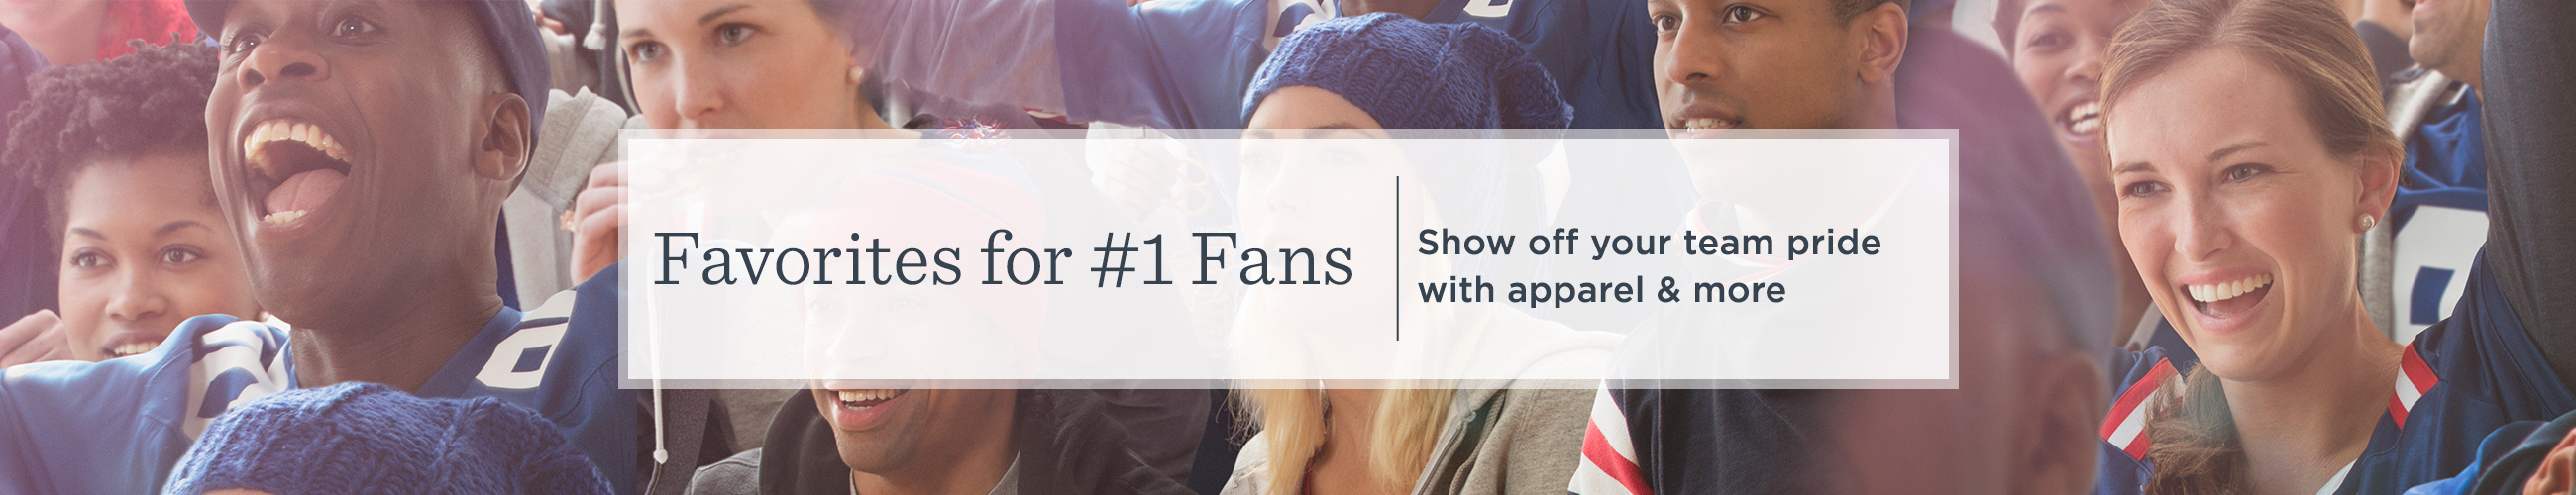 Favorites for #1 Fans. Show off your team pride with apparel & more